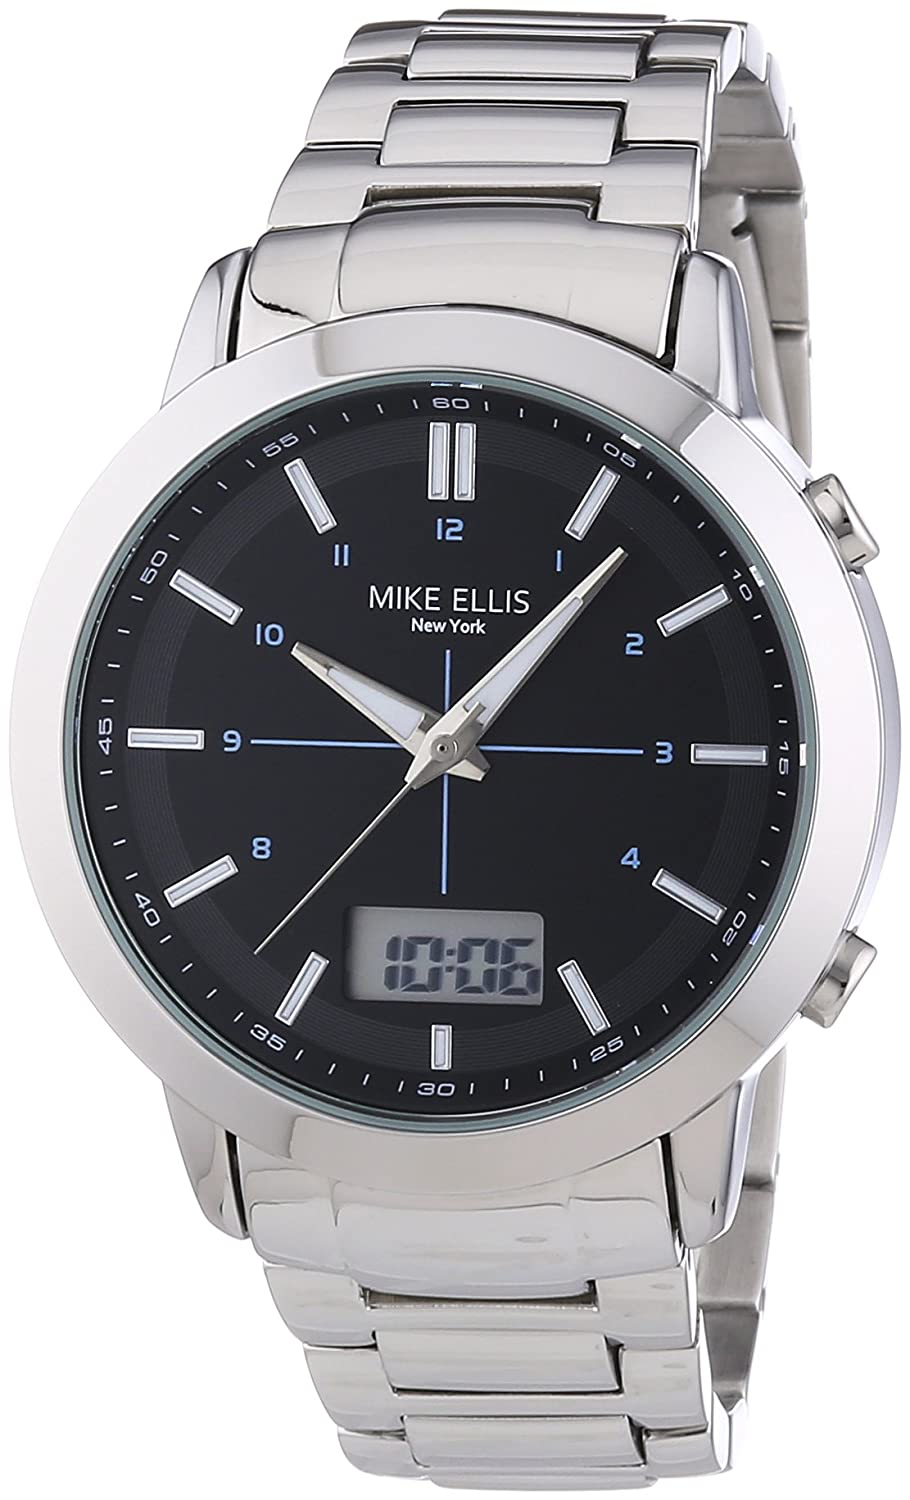 Mike Ellis New York Herren-Armbanduhr XL Analog - Digital Quarz Edelstahl SL4-60220